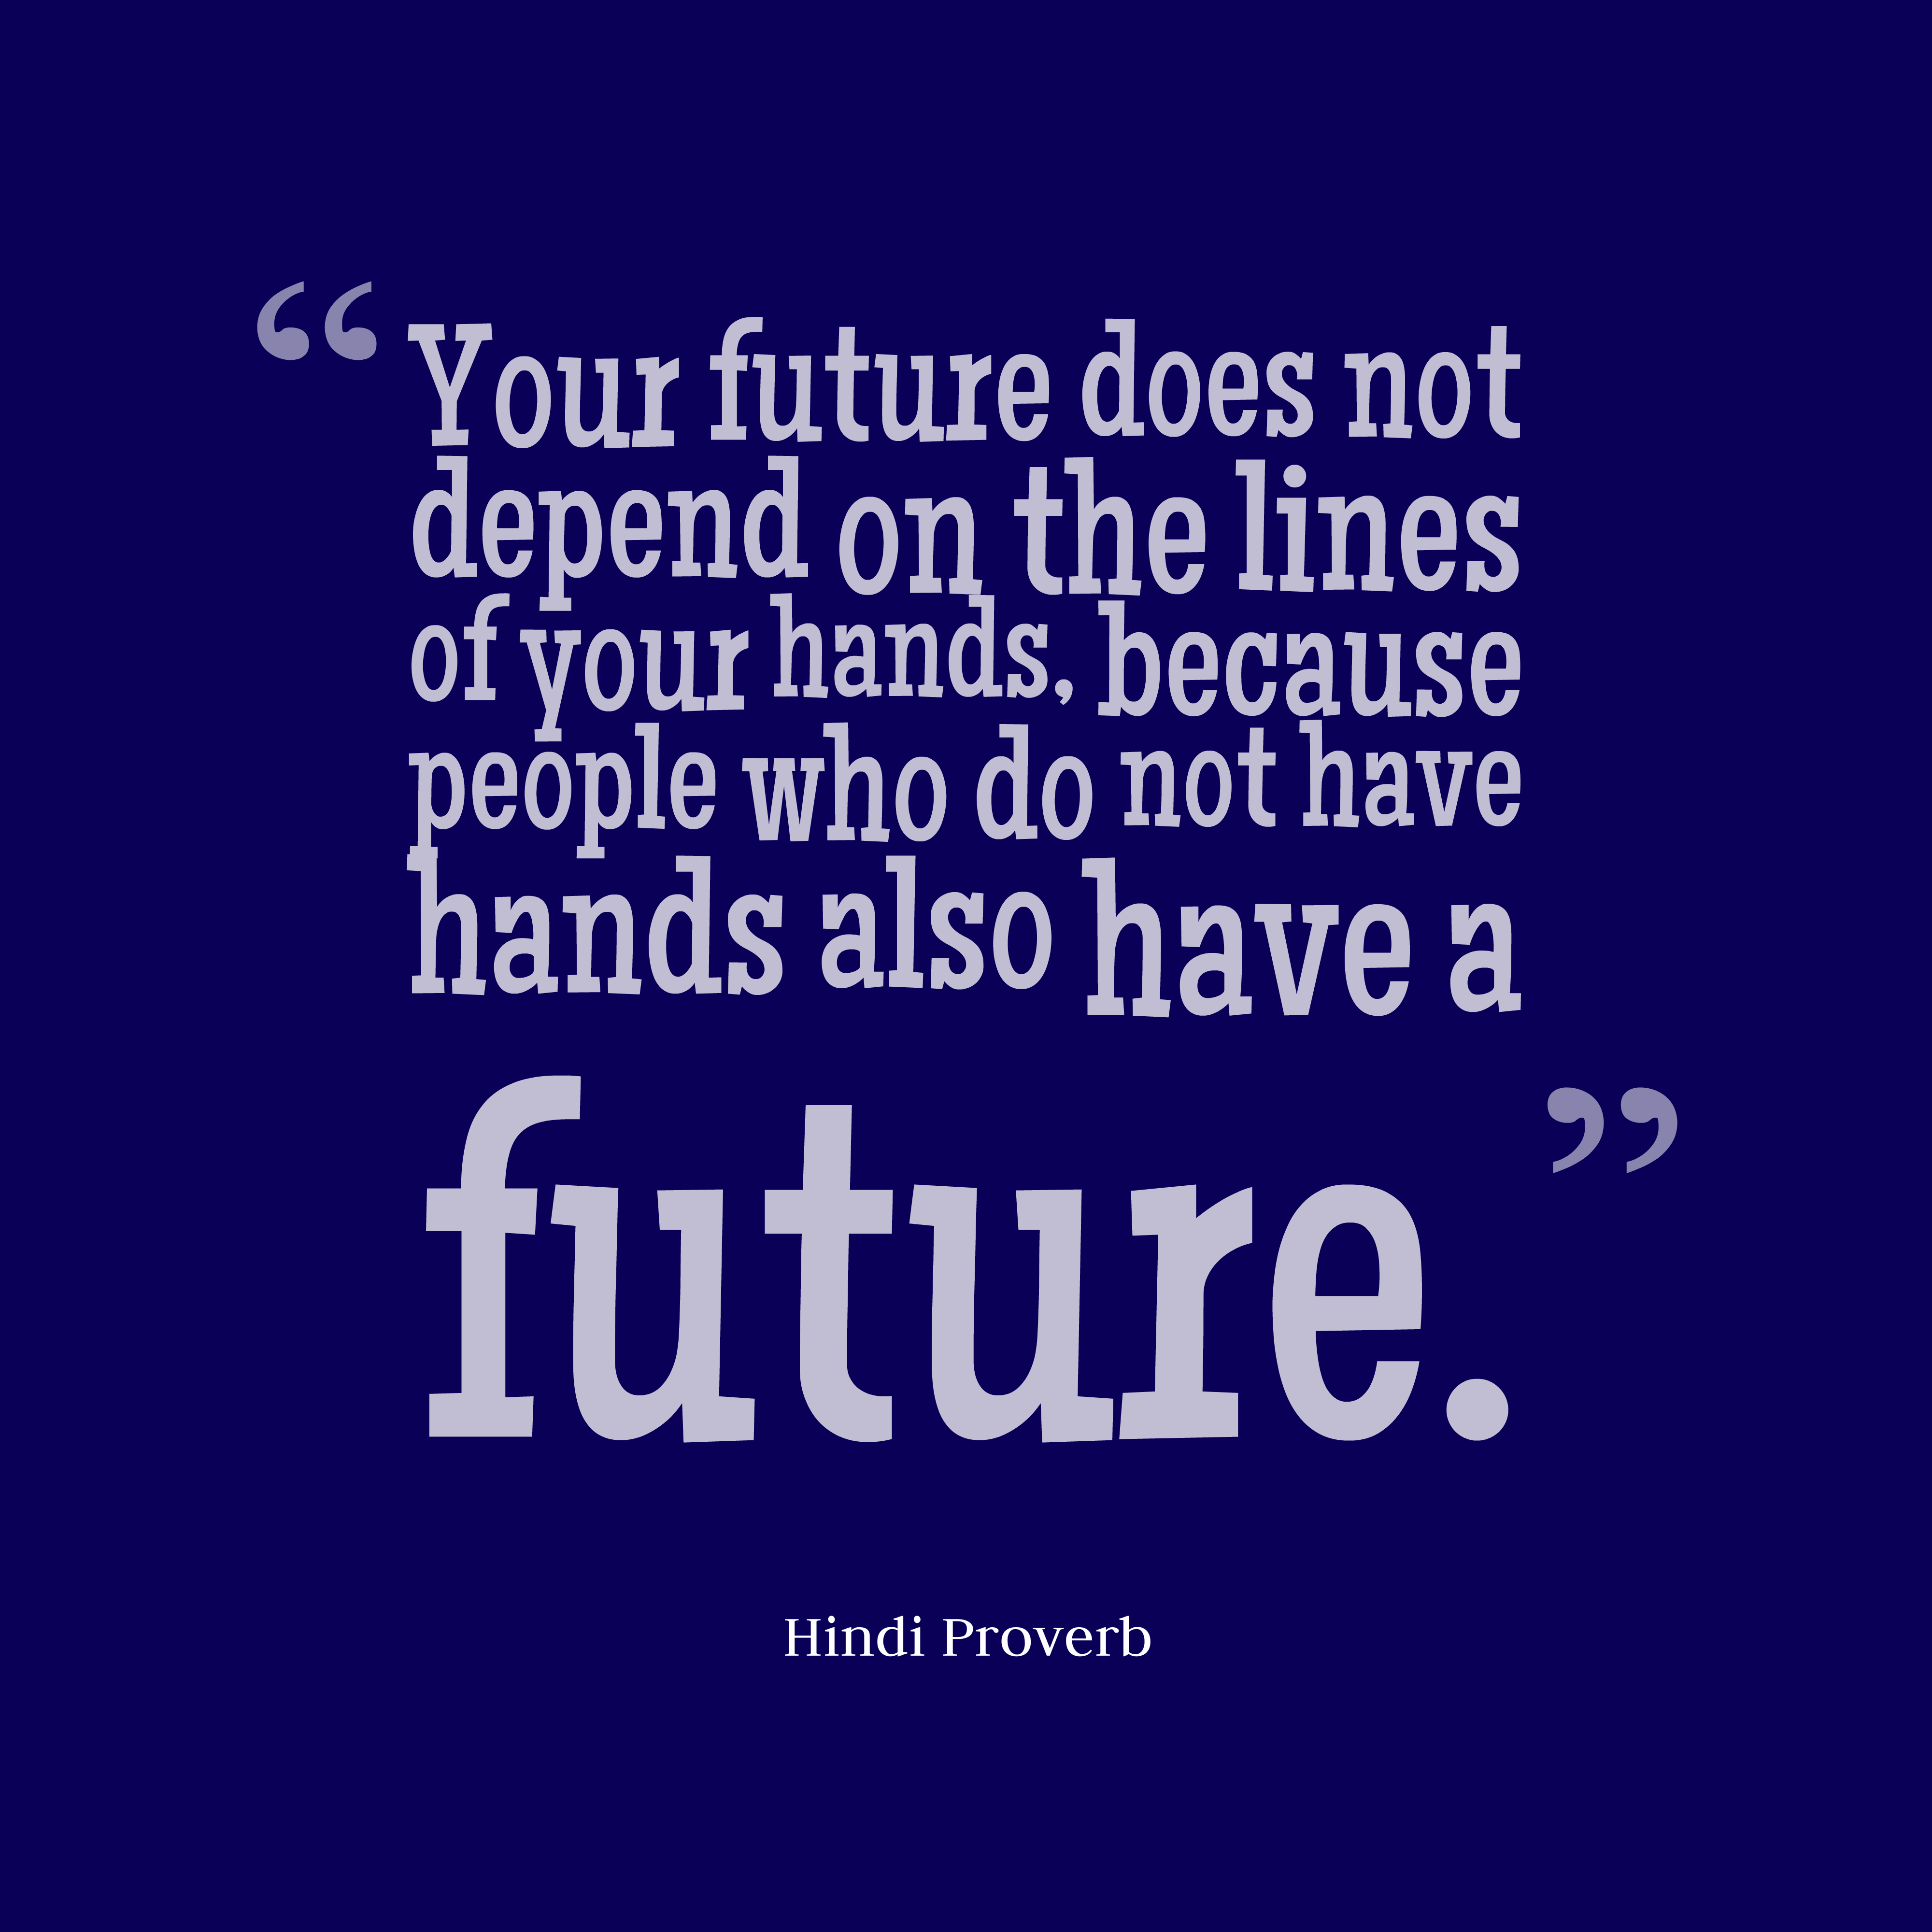 Quotes image of Your future does not depend on the lines of your hands, because people who do not have hands also have a future.